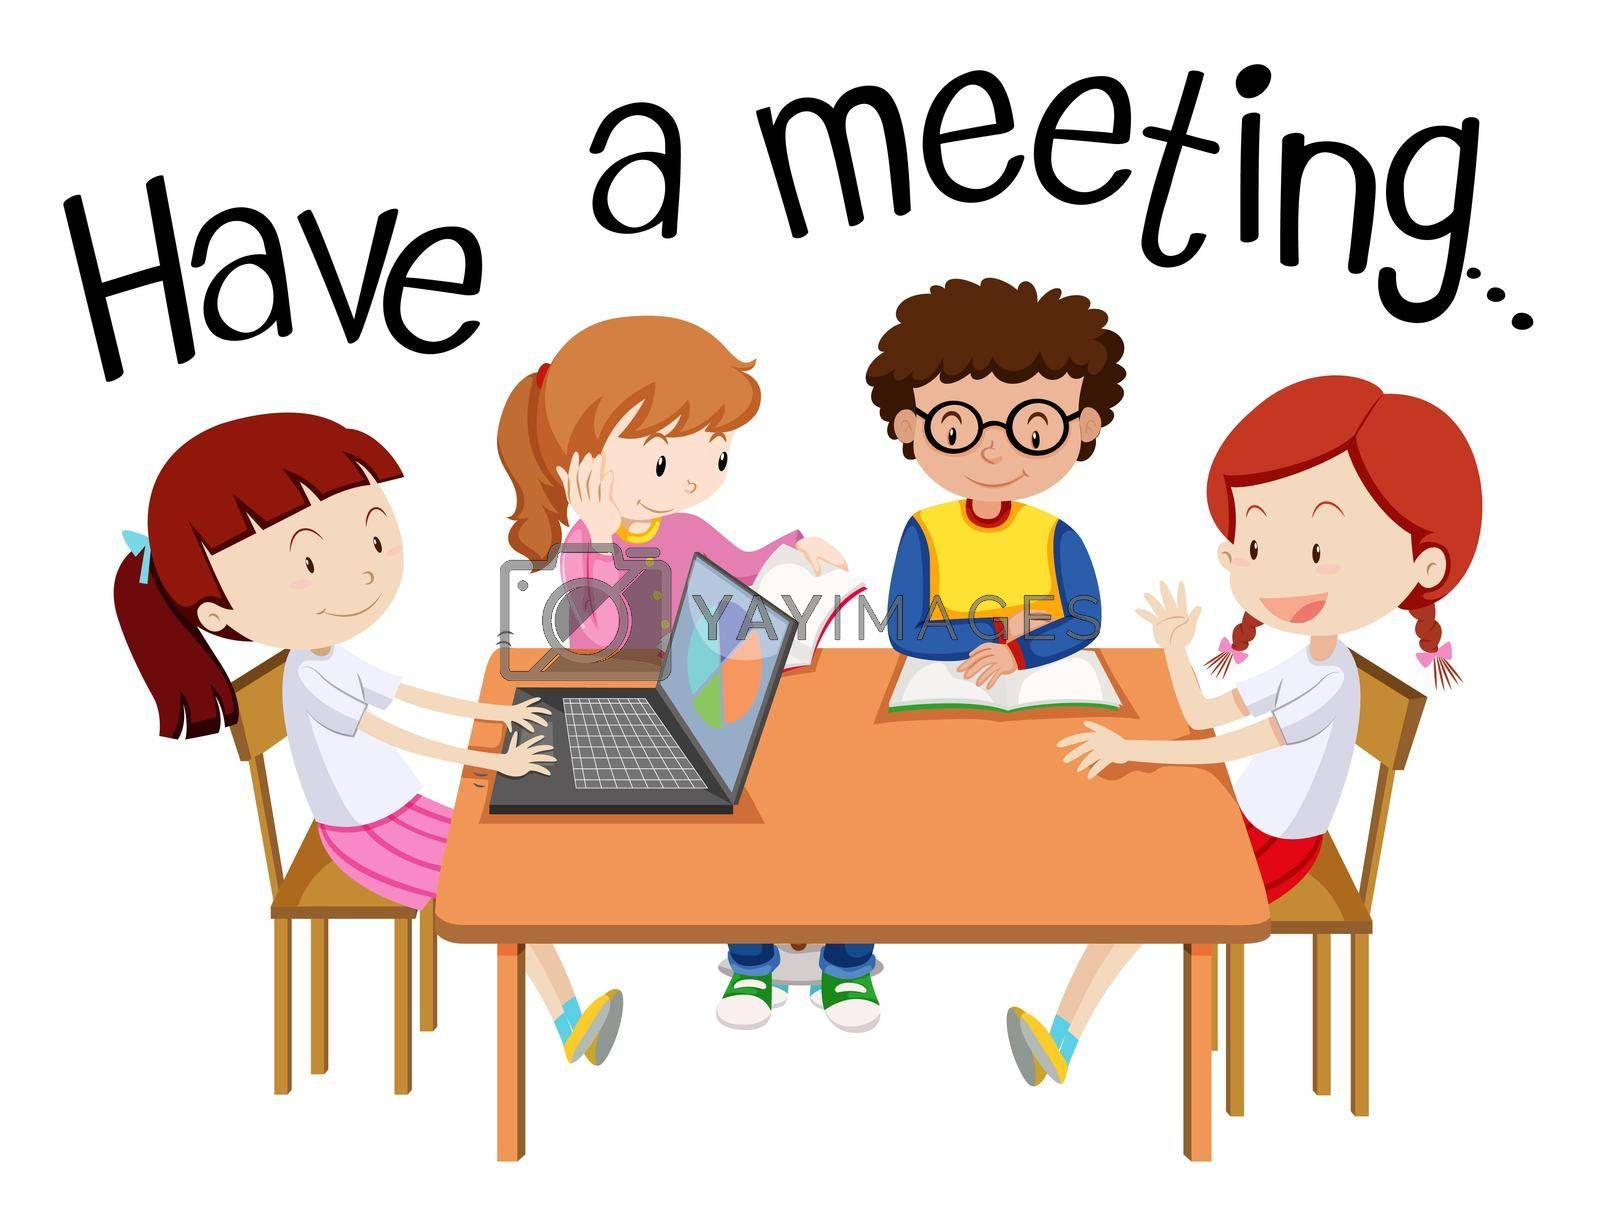 Wordcard for have a meeting with people on the table illustration